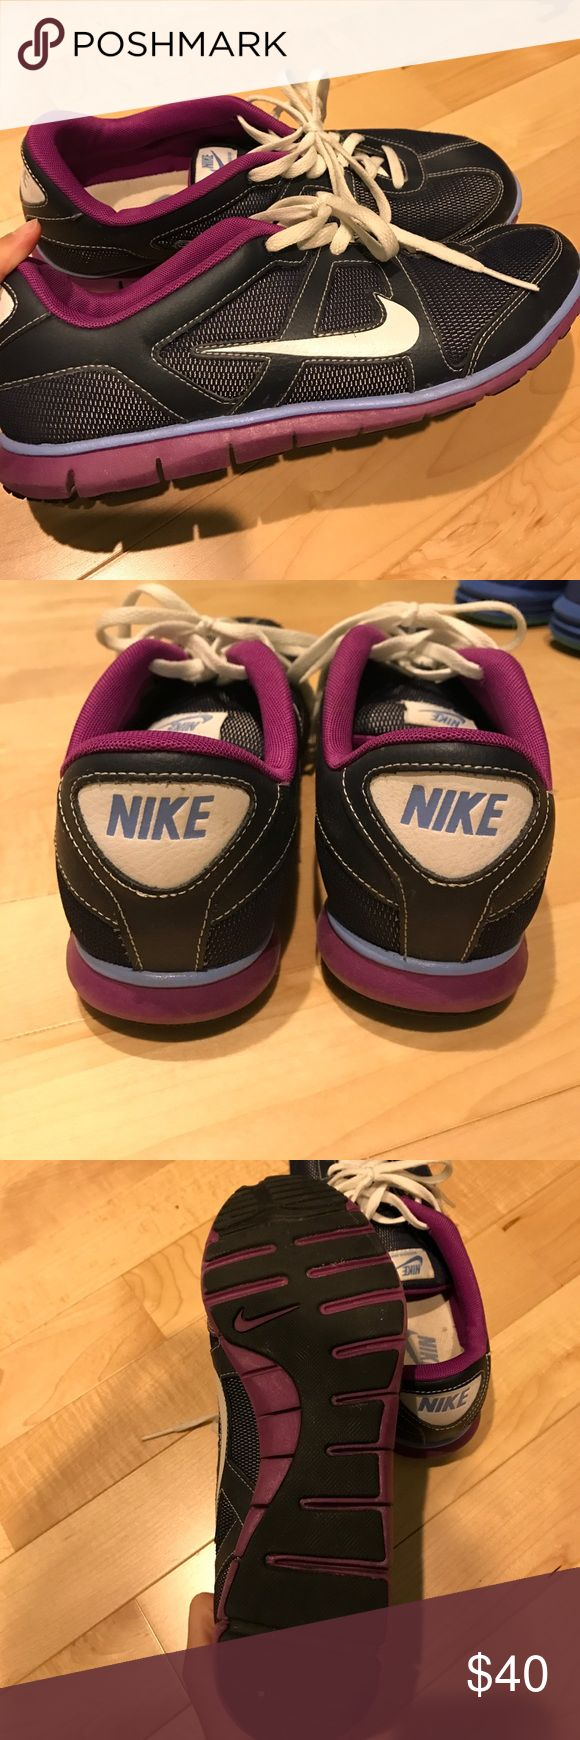 Nike Casual Athletic Shoes Worn less than 5 times! Navy with light blue and purple accents. White laces. Great for bumming around or walking to and from class or work. Nike Shoes Athletic Shoes